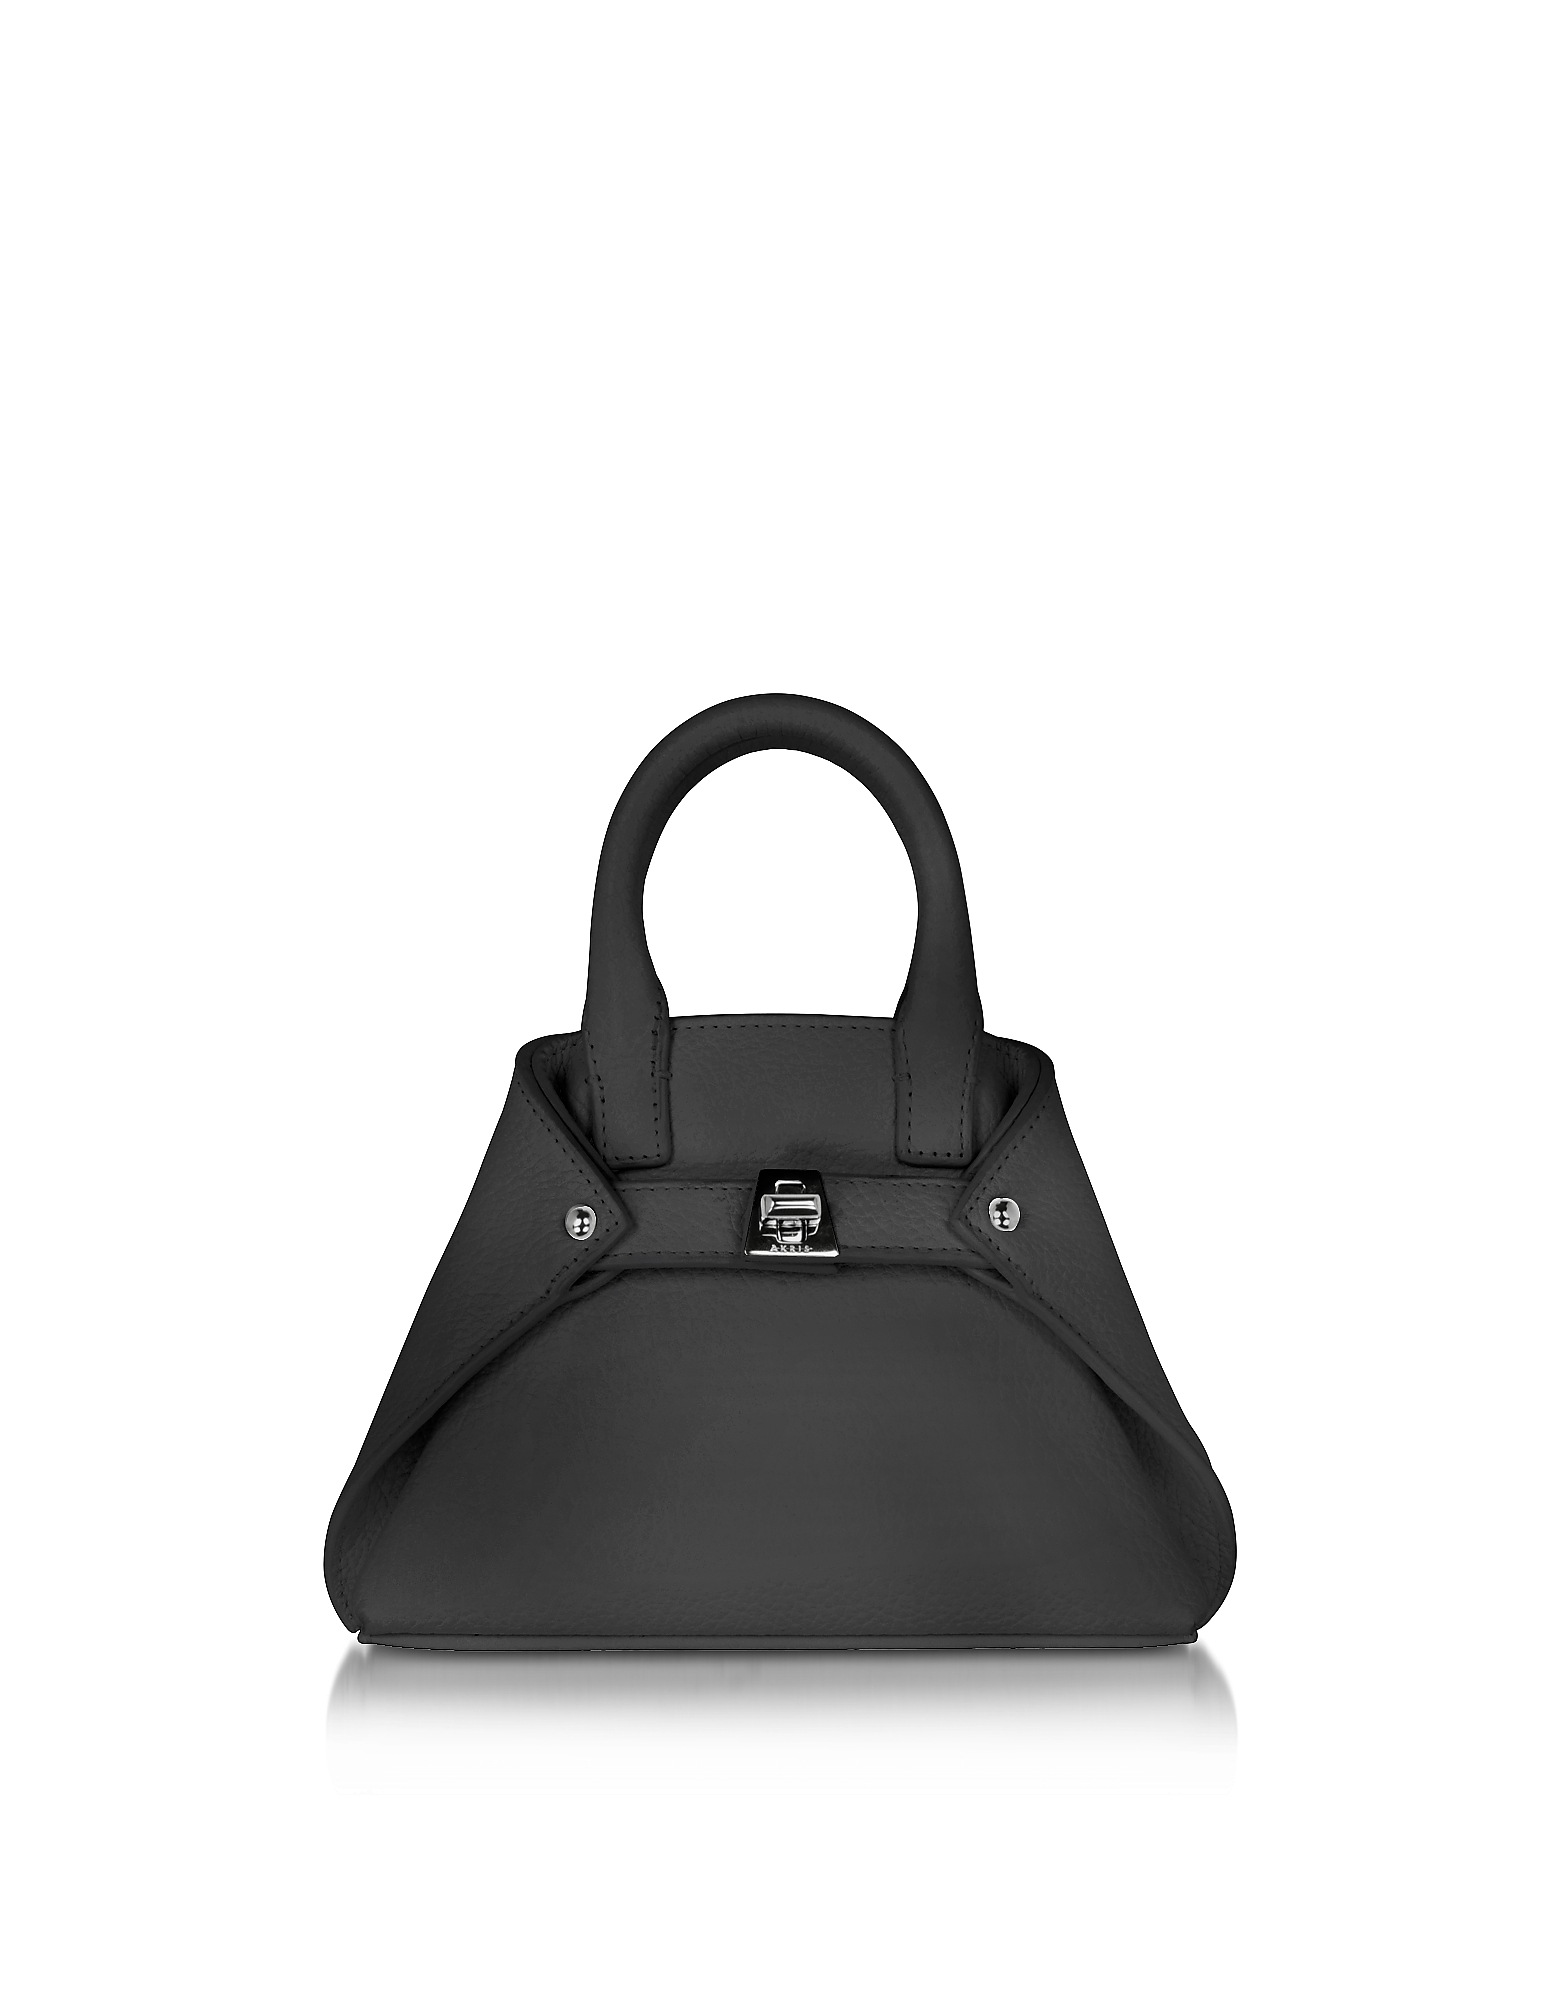 Akris Handbags, Black Leather Micro Ai Crossbody Bag